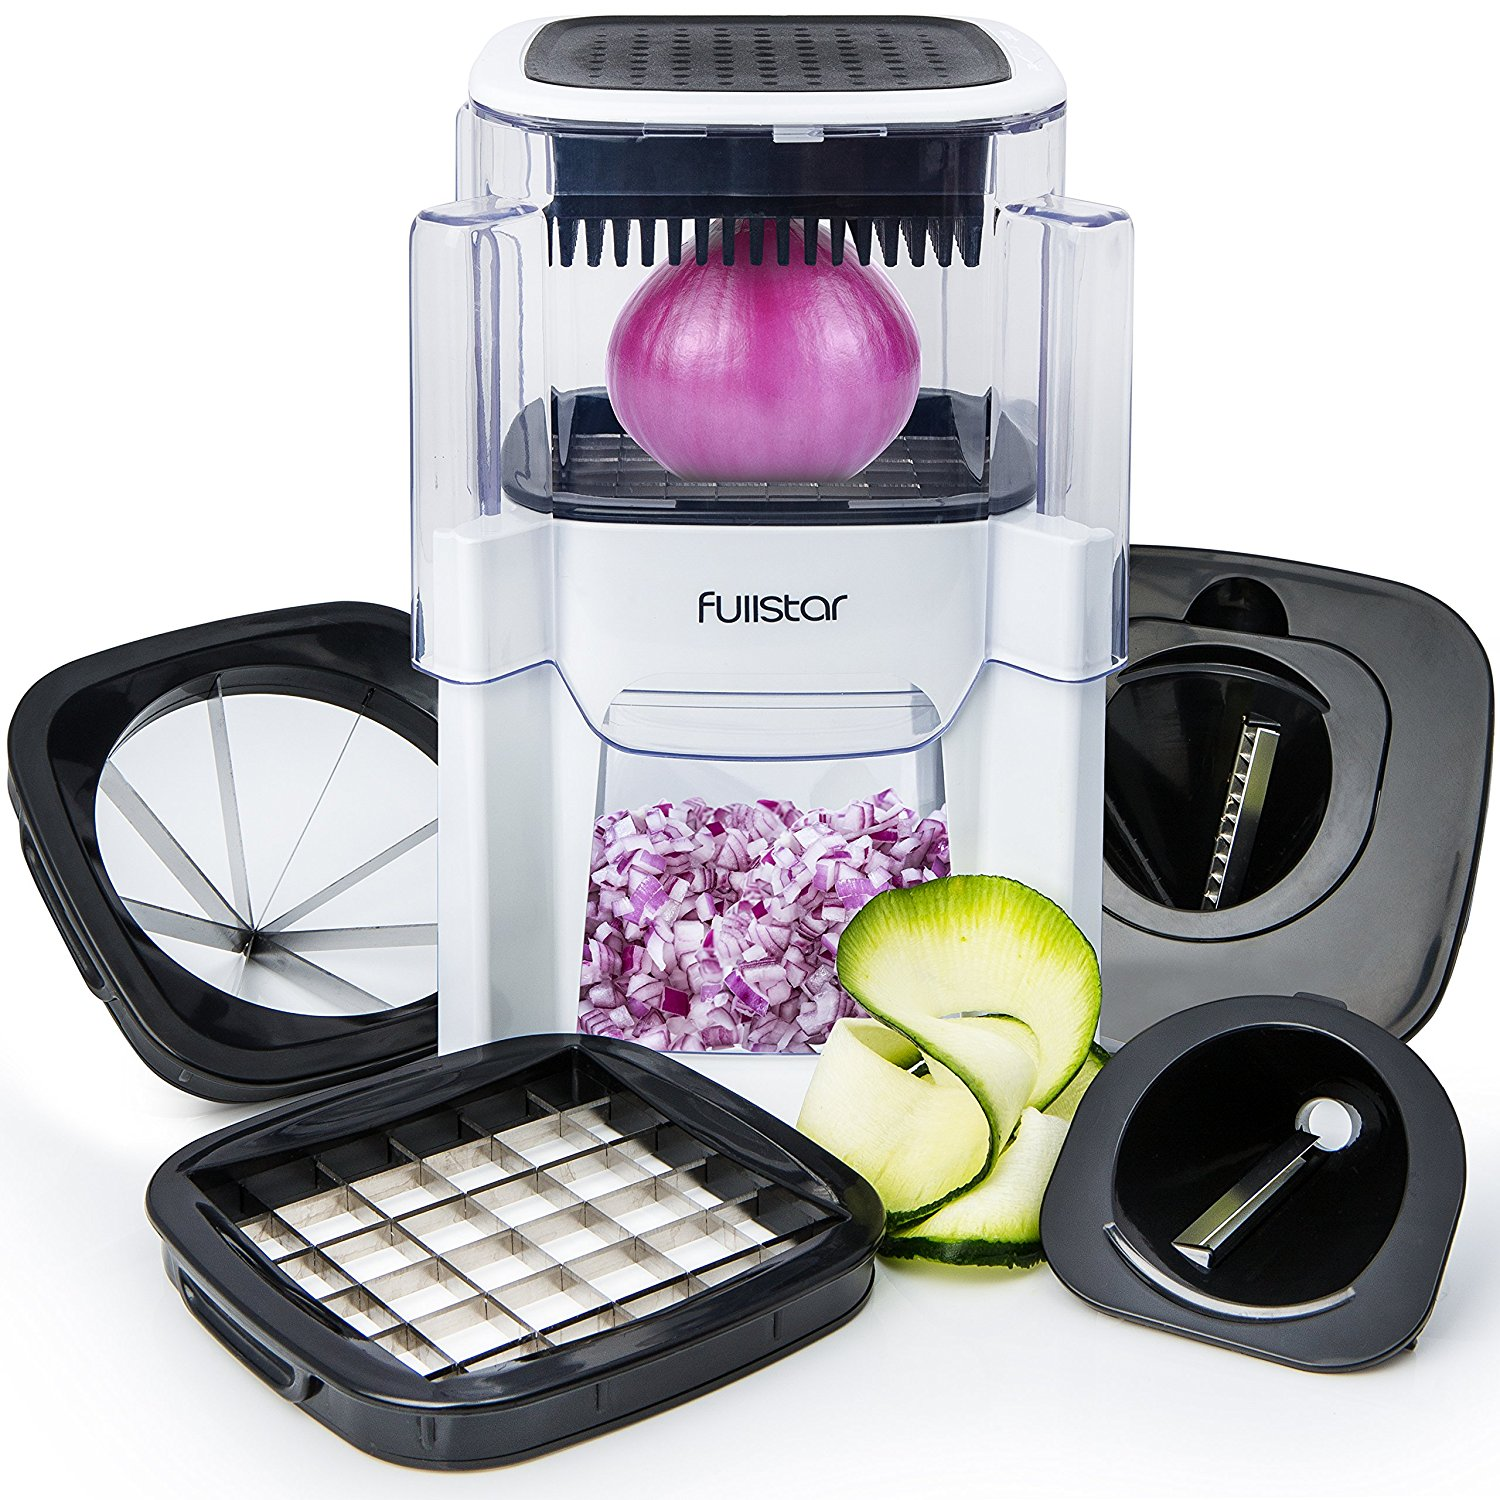 Vegetable Chopper 5 in 1 by Fullstar